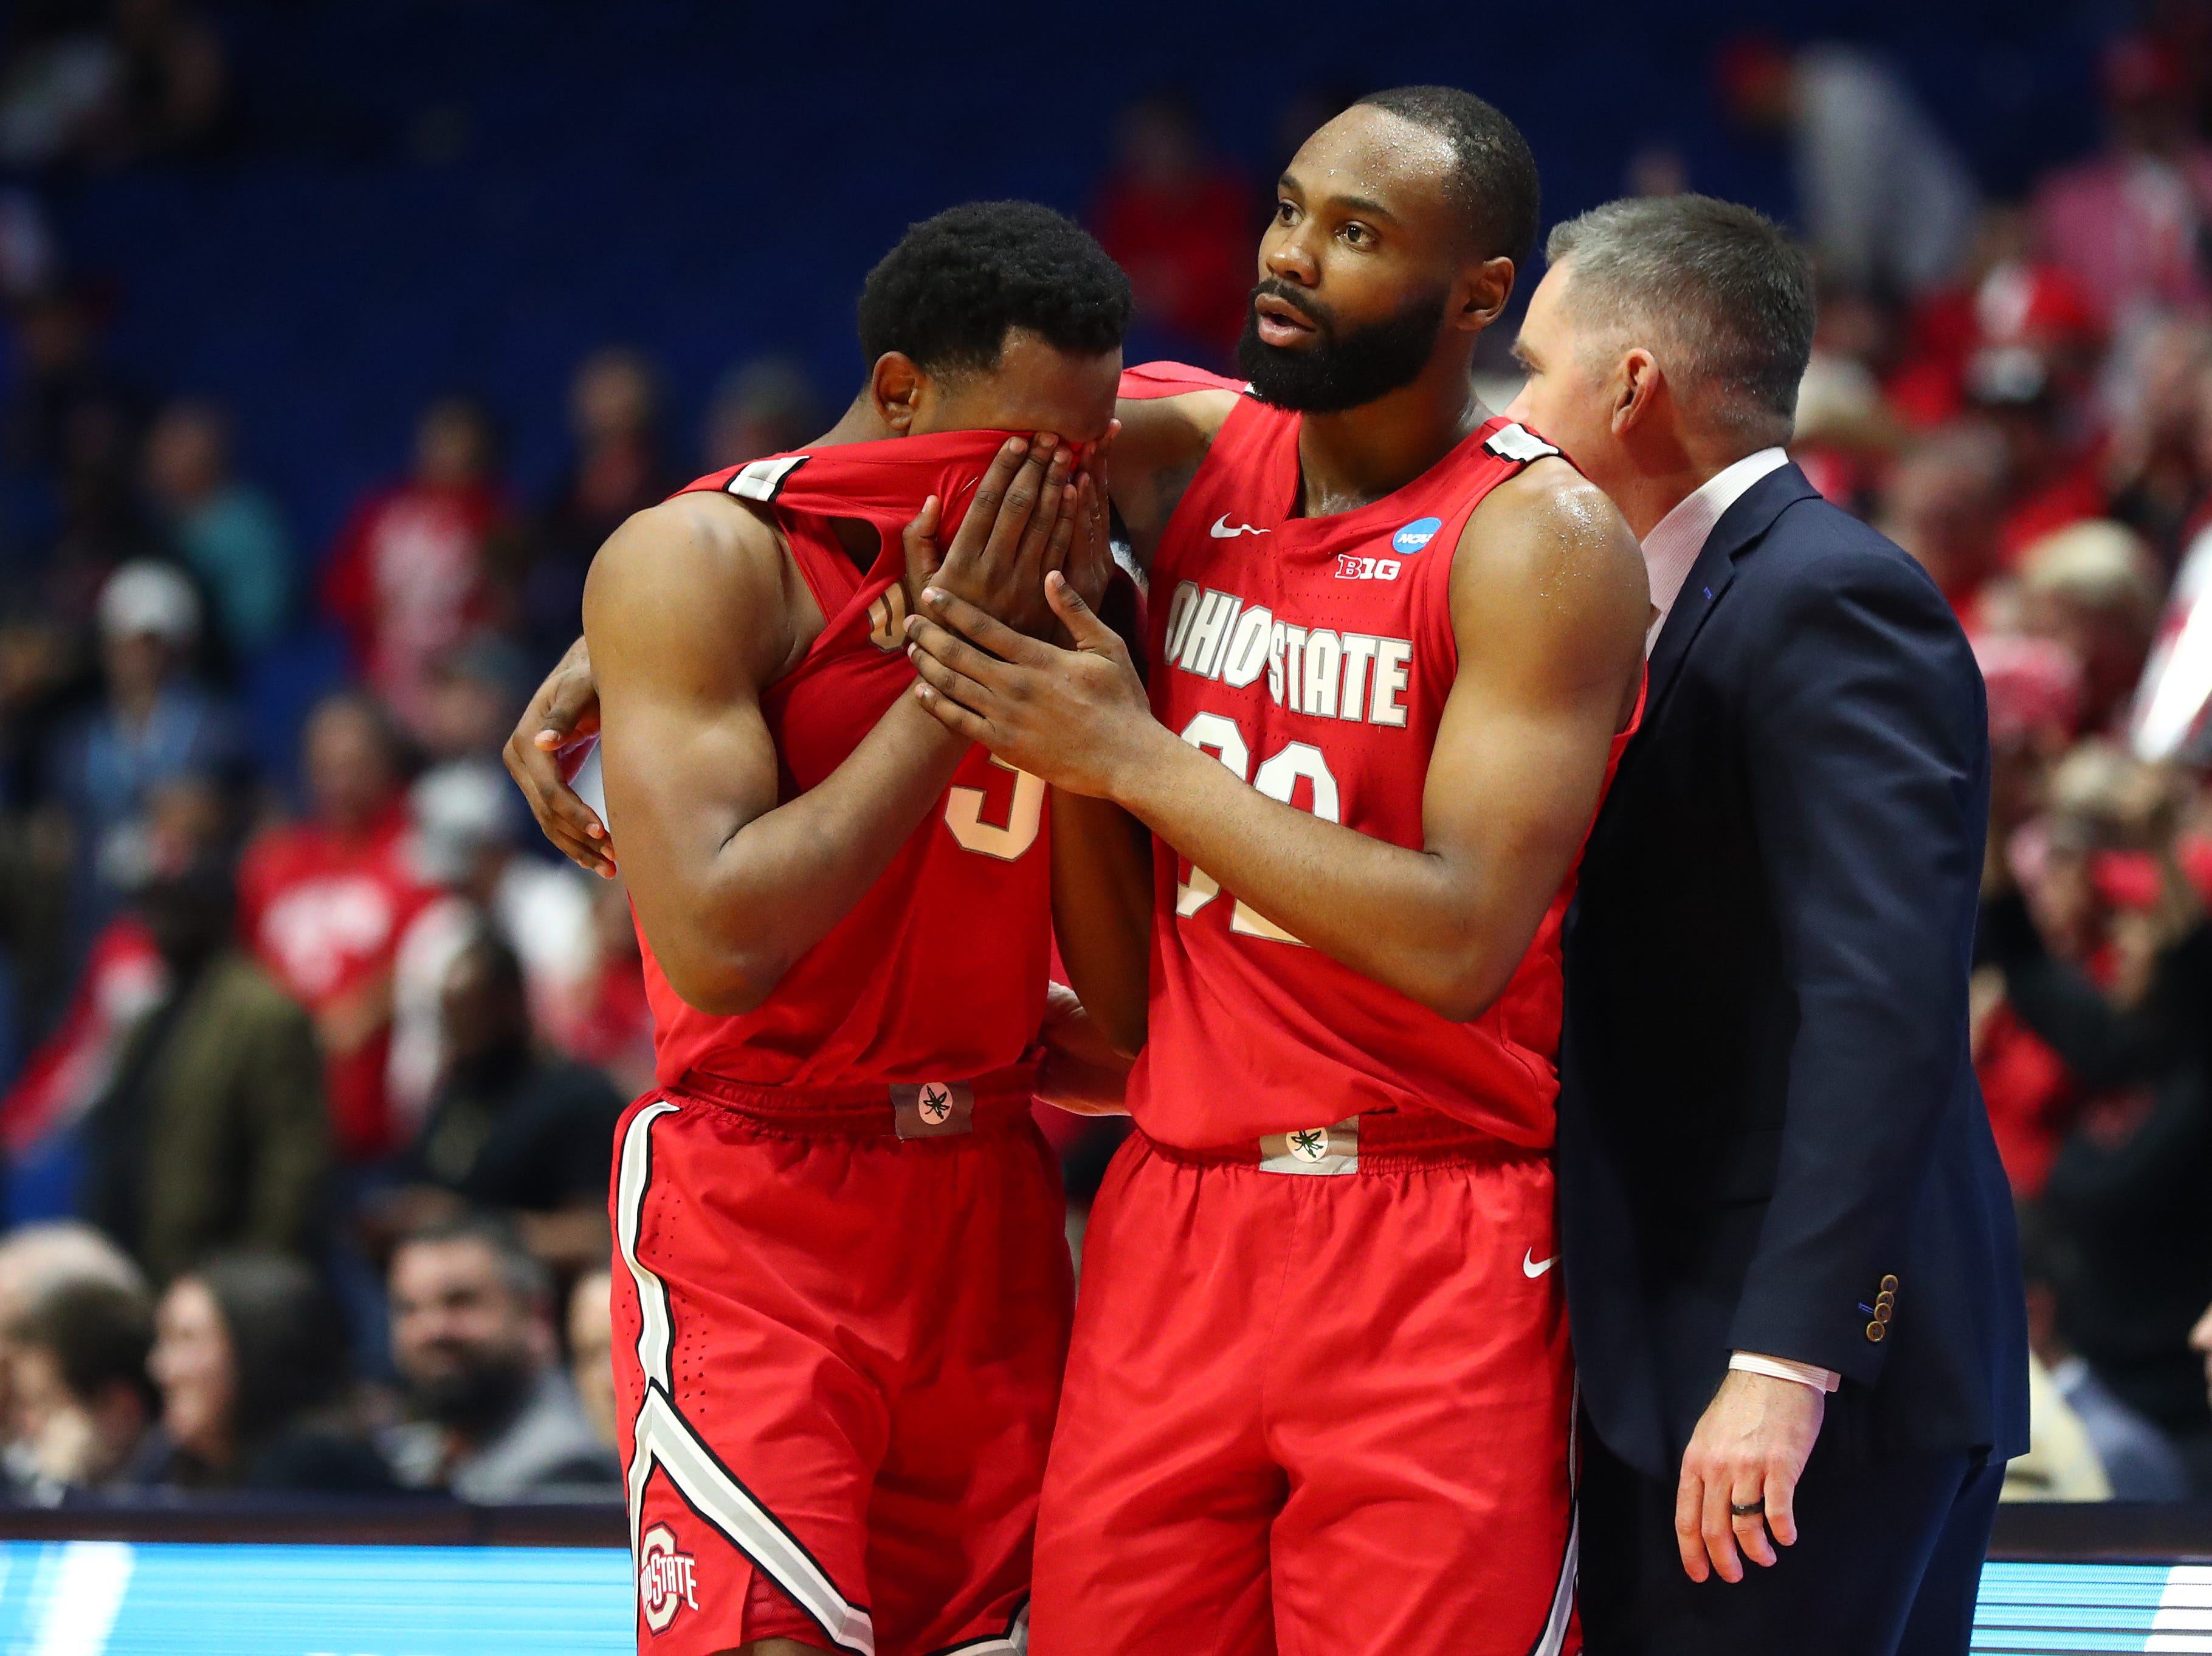 Round of 32: No. 11 Ohio State loses to No. 3 Houston, 74-59.